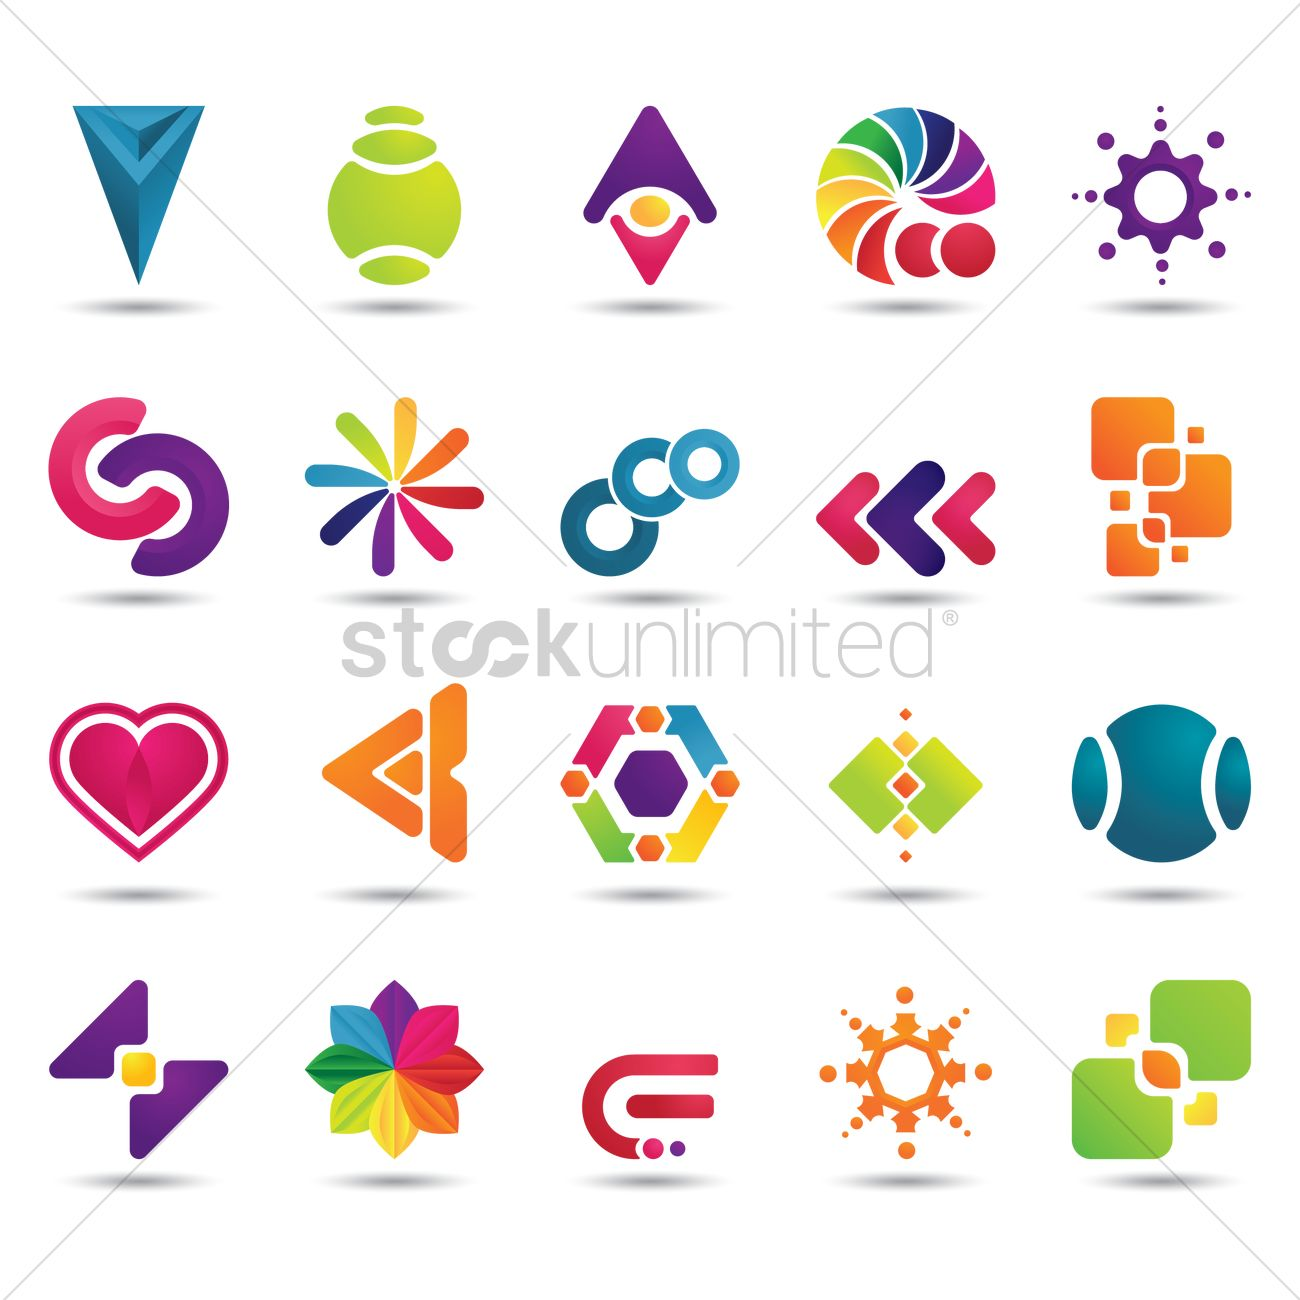 Set of abstract logo elements Vector Image - 1629080 ...